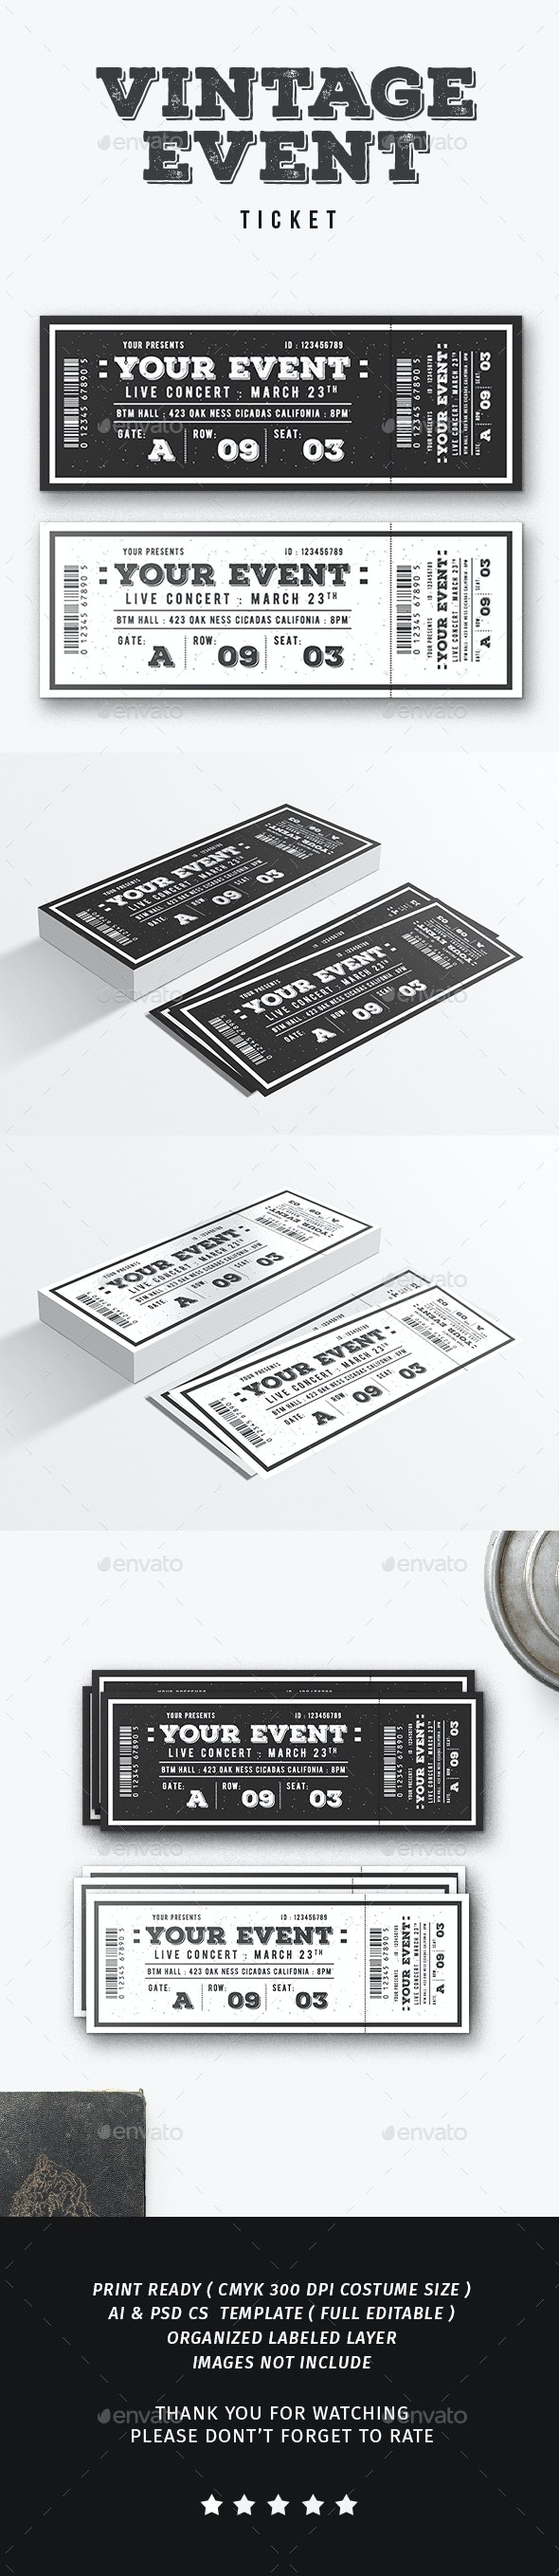 Vintage Event Ticket - Events Flyers